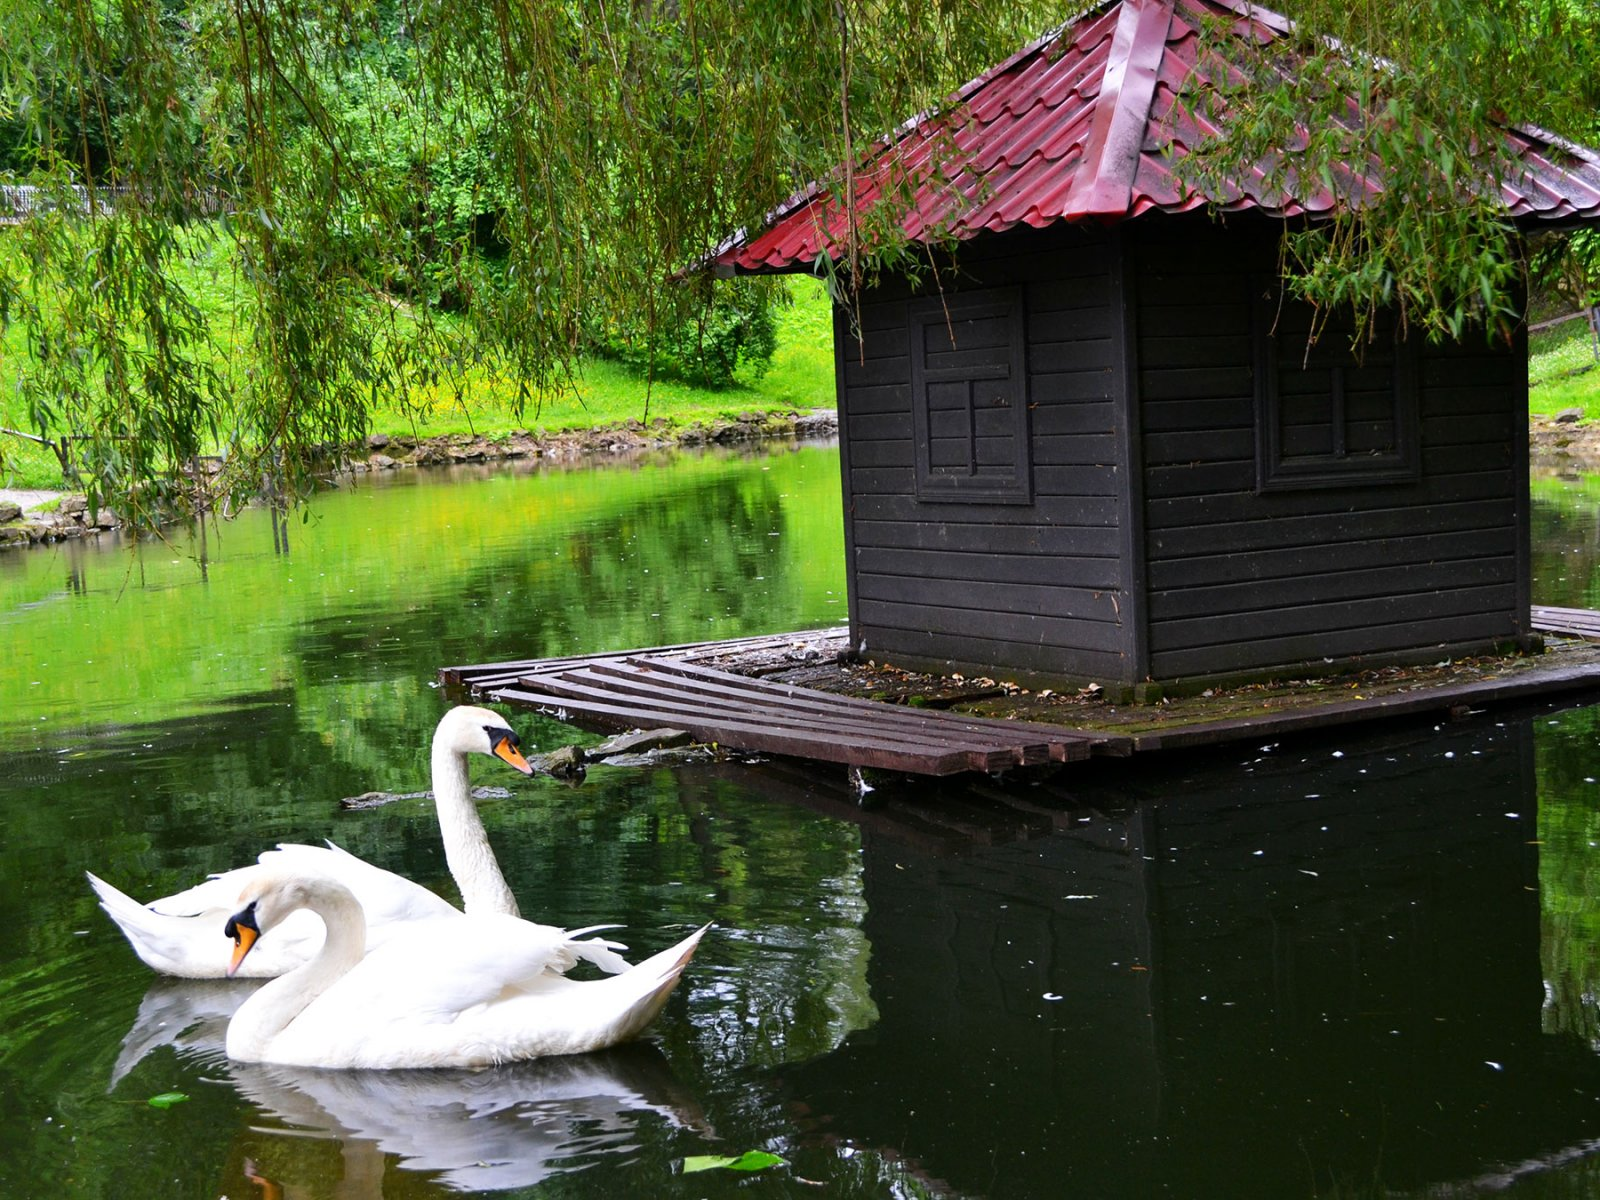 How to feed swans in Stryiskyi park in Lviv